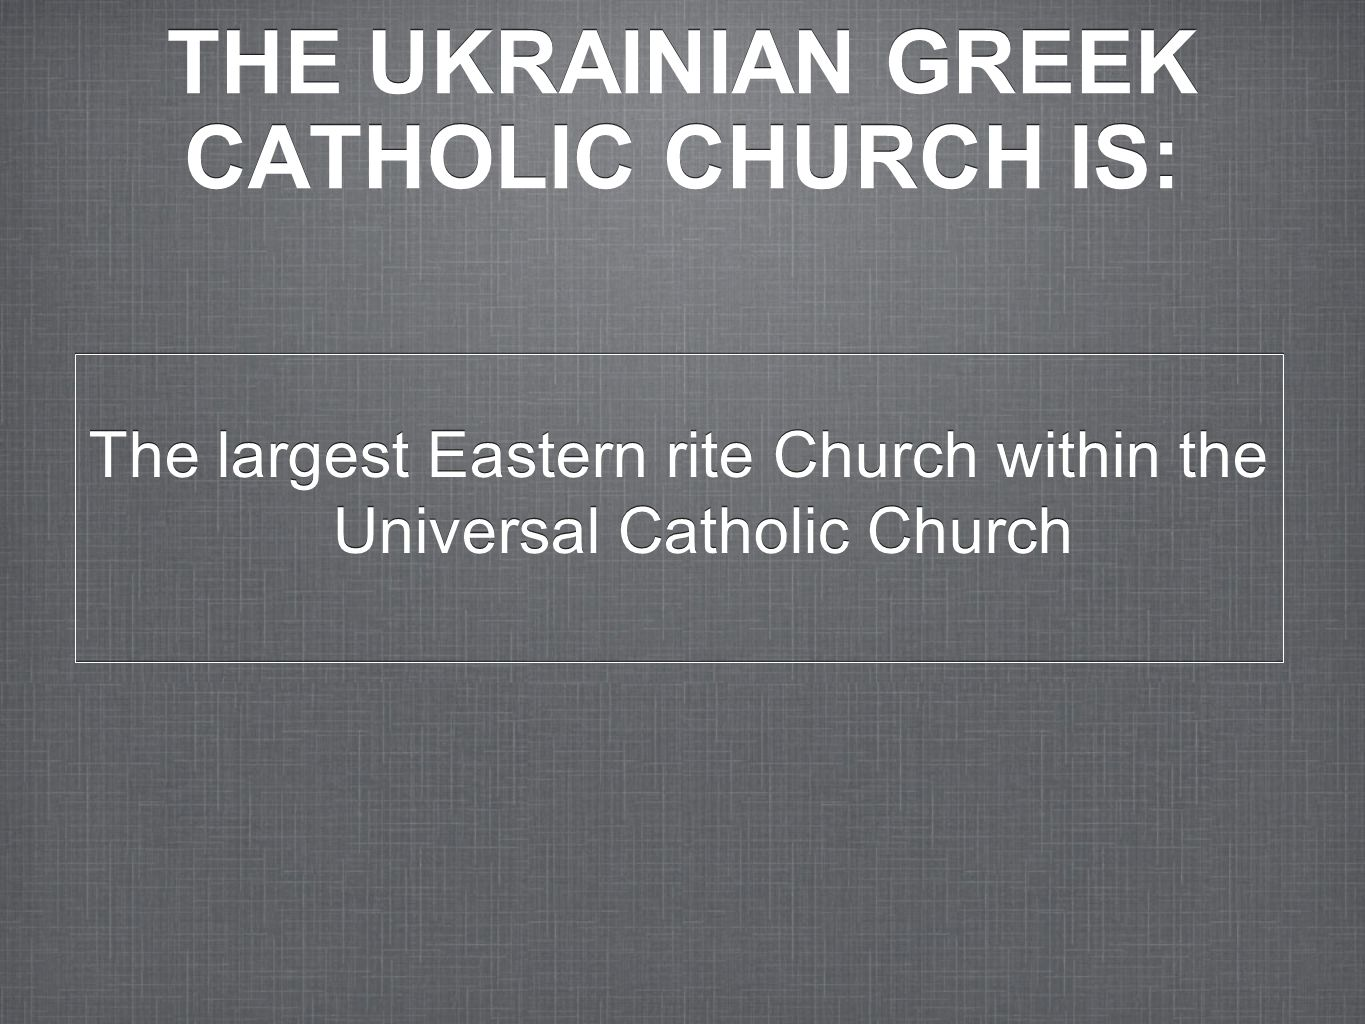 THE UKRAINIAN GREEK CATHOLIC CHURCH IS: The largest Eastern rite Church within the Universal Catholic Church